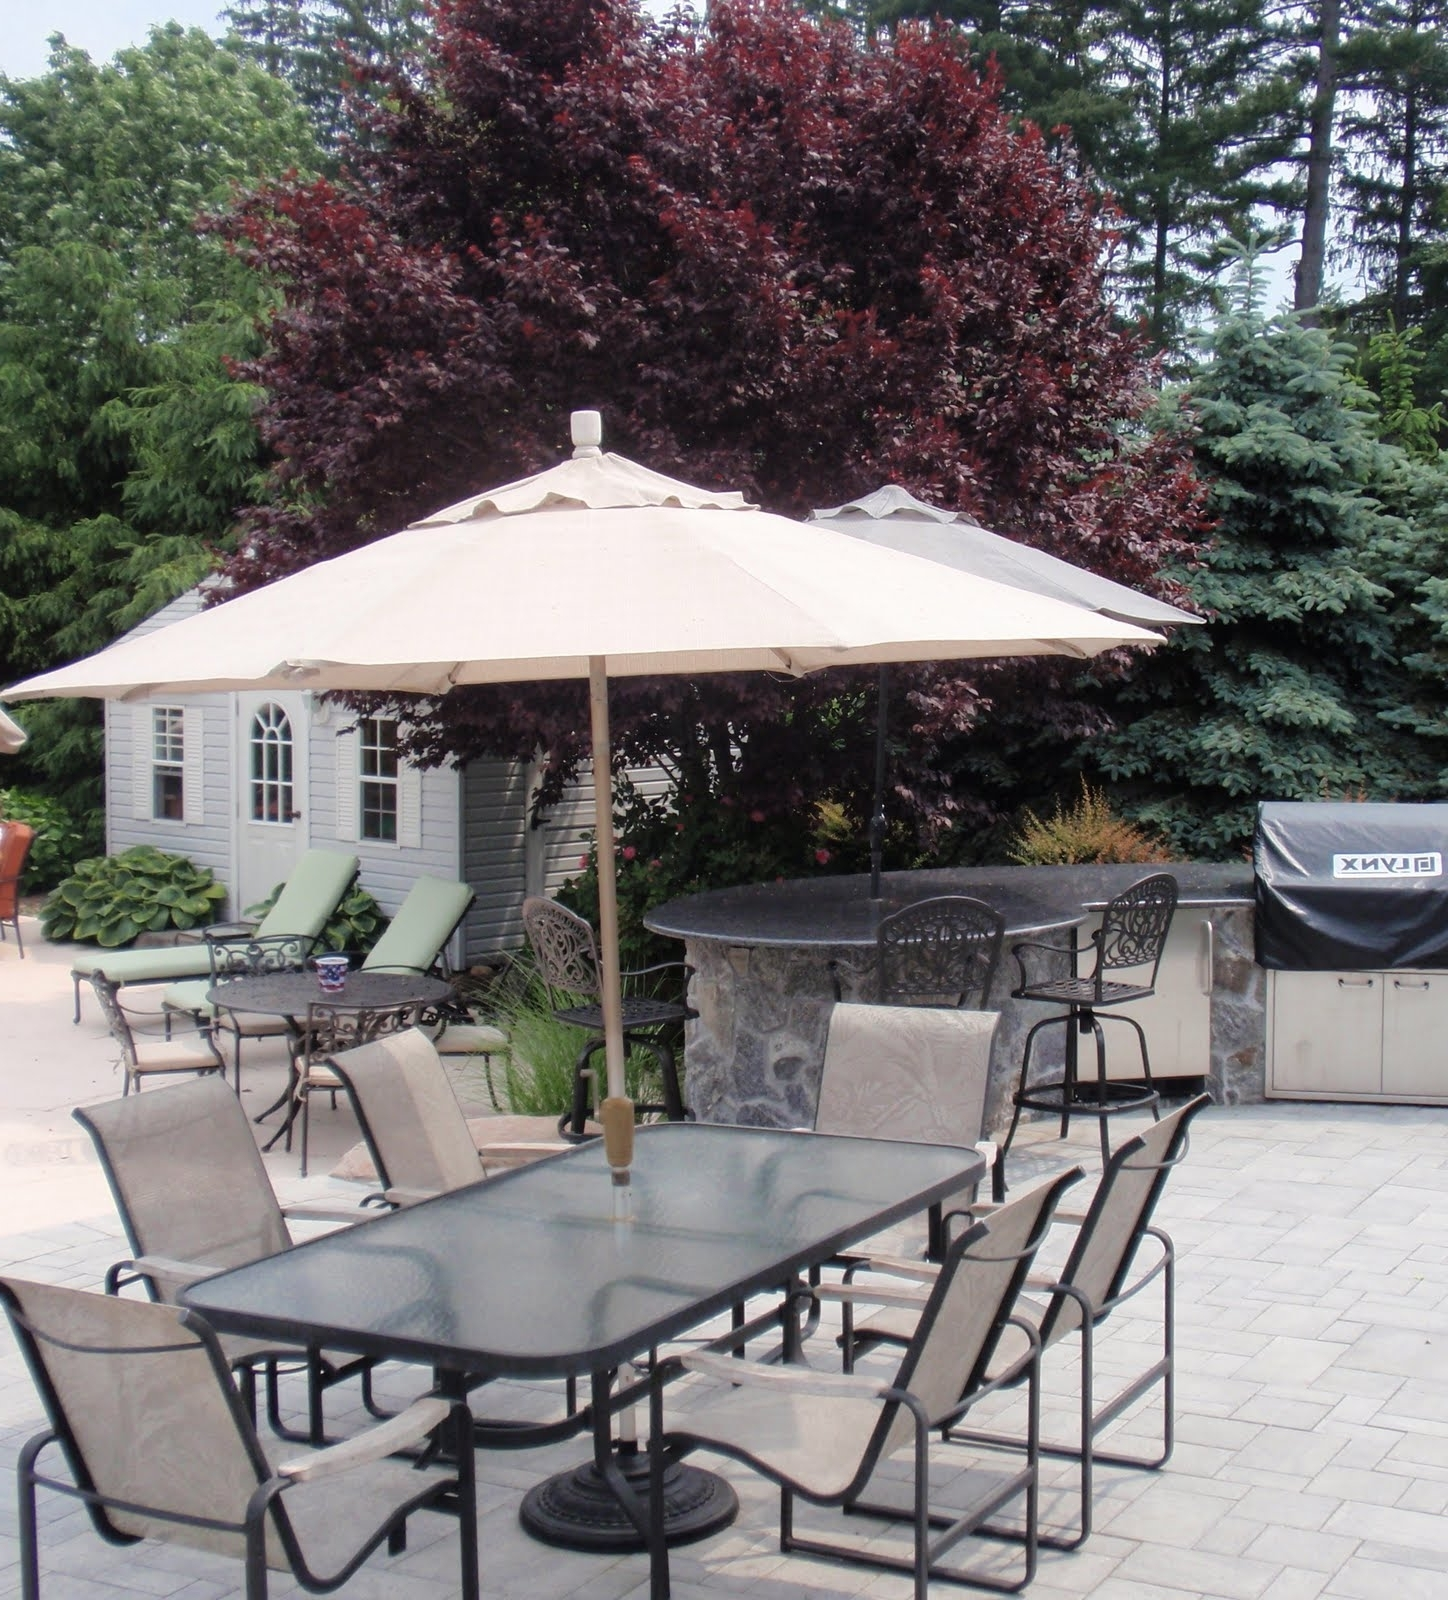 Preferred Fabulous Patio Table Umbrellas Exterior Red Target Patio Umbrellas With Free Standing Umbrellas For Patio (Gallery 7 of 20)